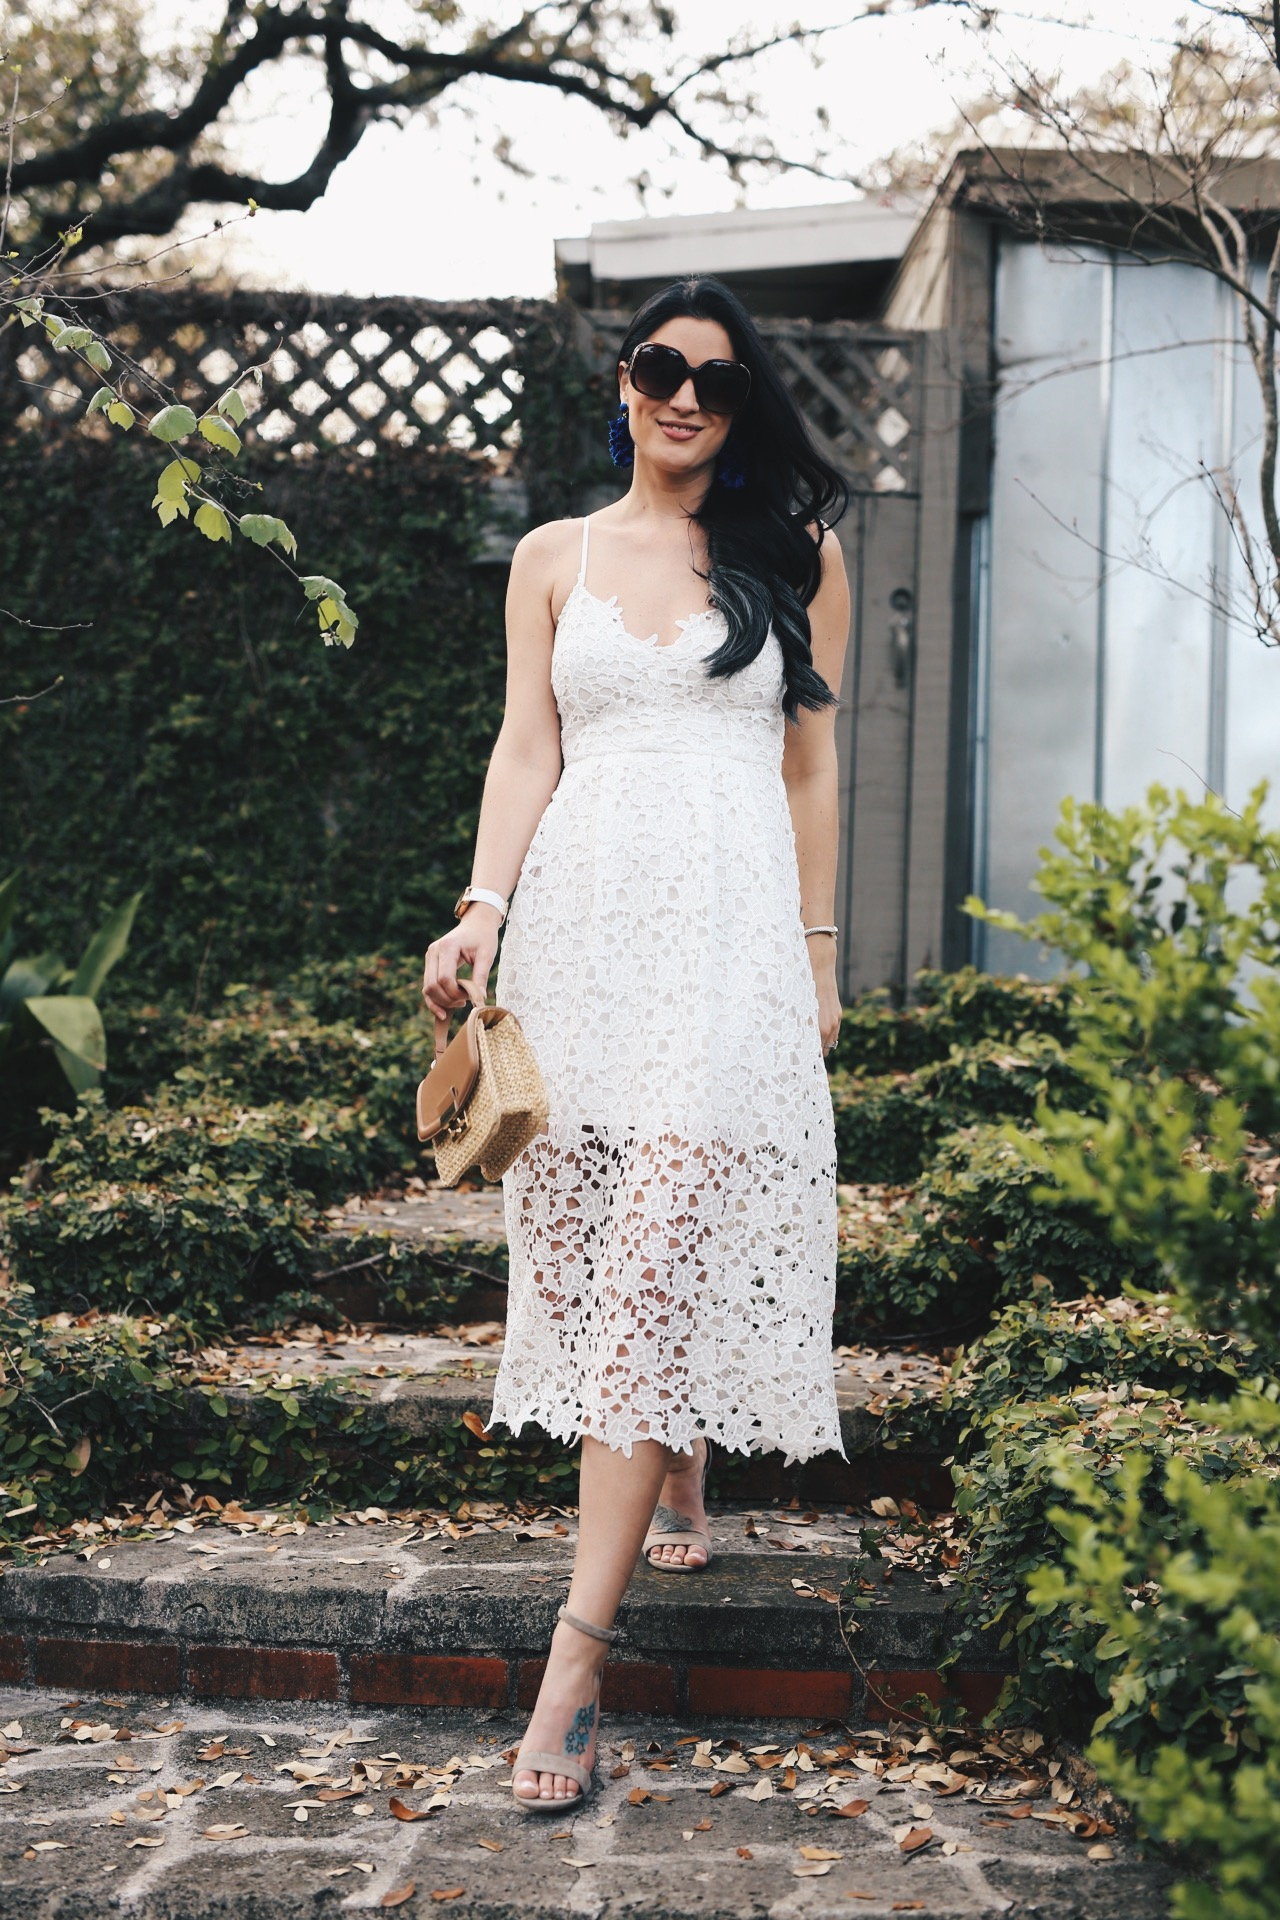 12 Affordable Easter Sunday Dresses all Under $100 for Spring || Dressed to Kill #easterdresses #springdresses #springoutfit - 12 Cute Easter Dresses Under $100 by popular Austin style blogger Dressed to Kill